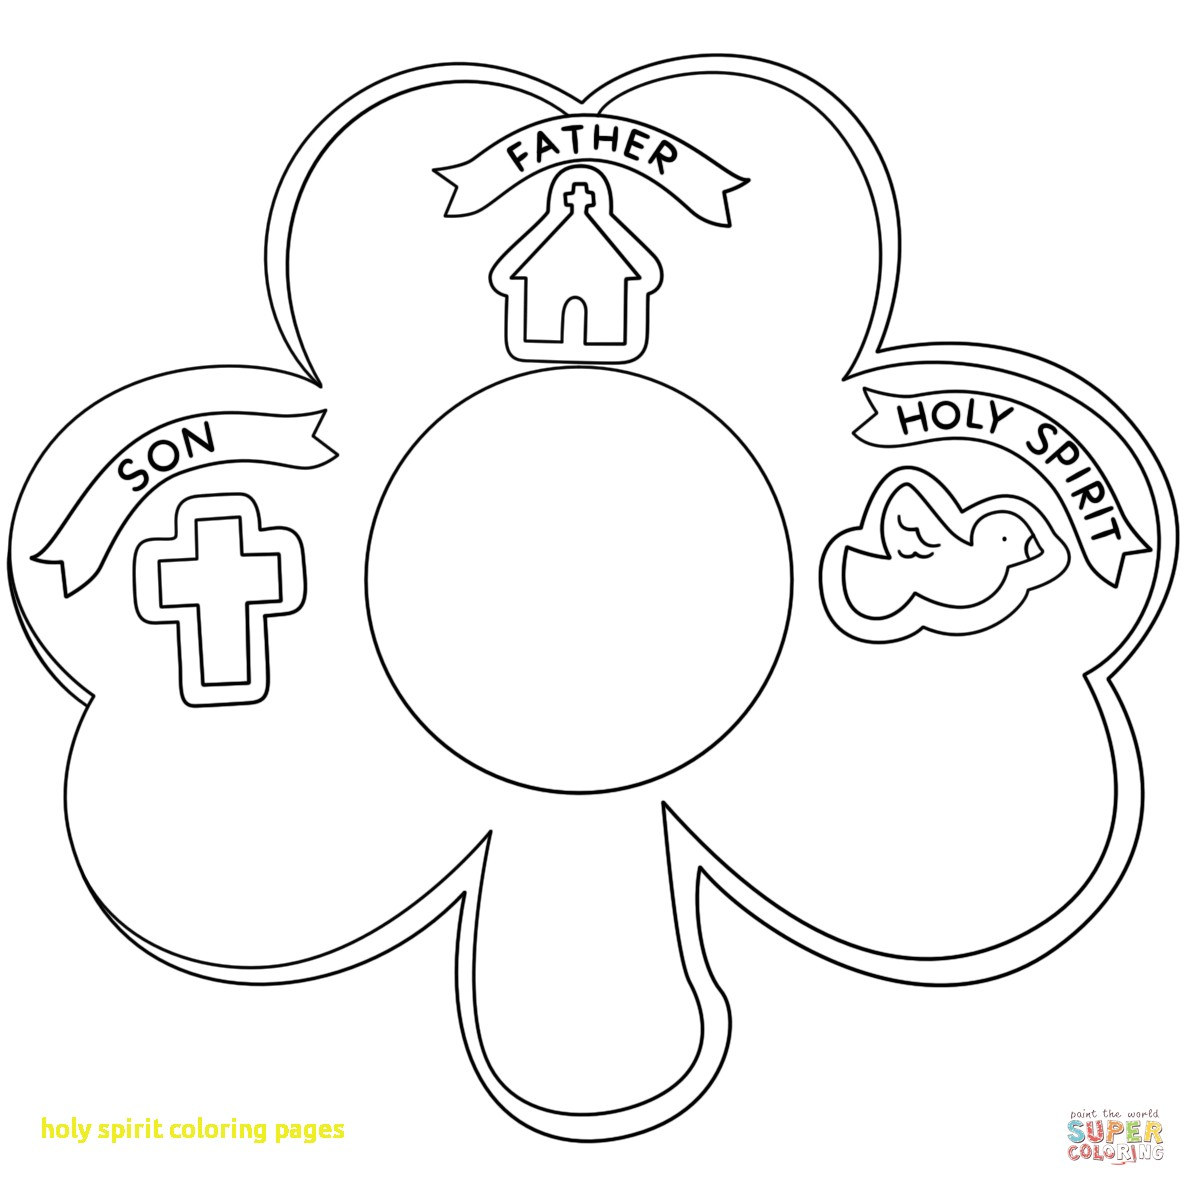 Holy Spirit Coloring Page At Getcolorings